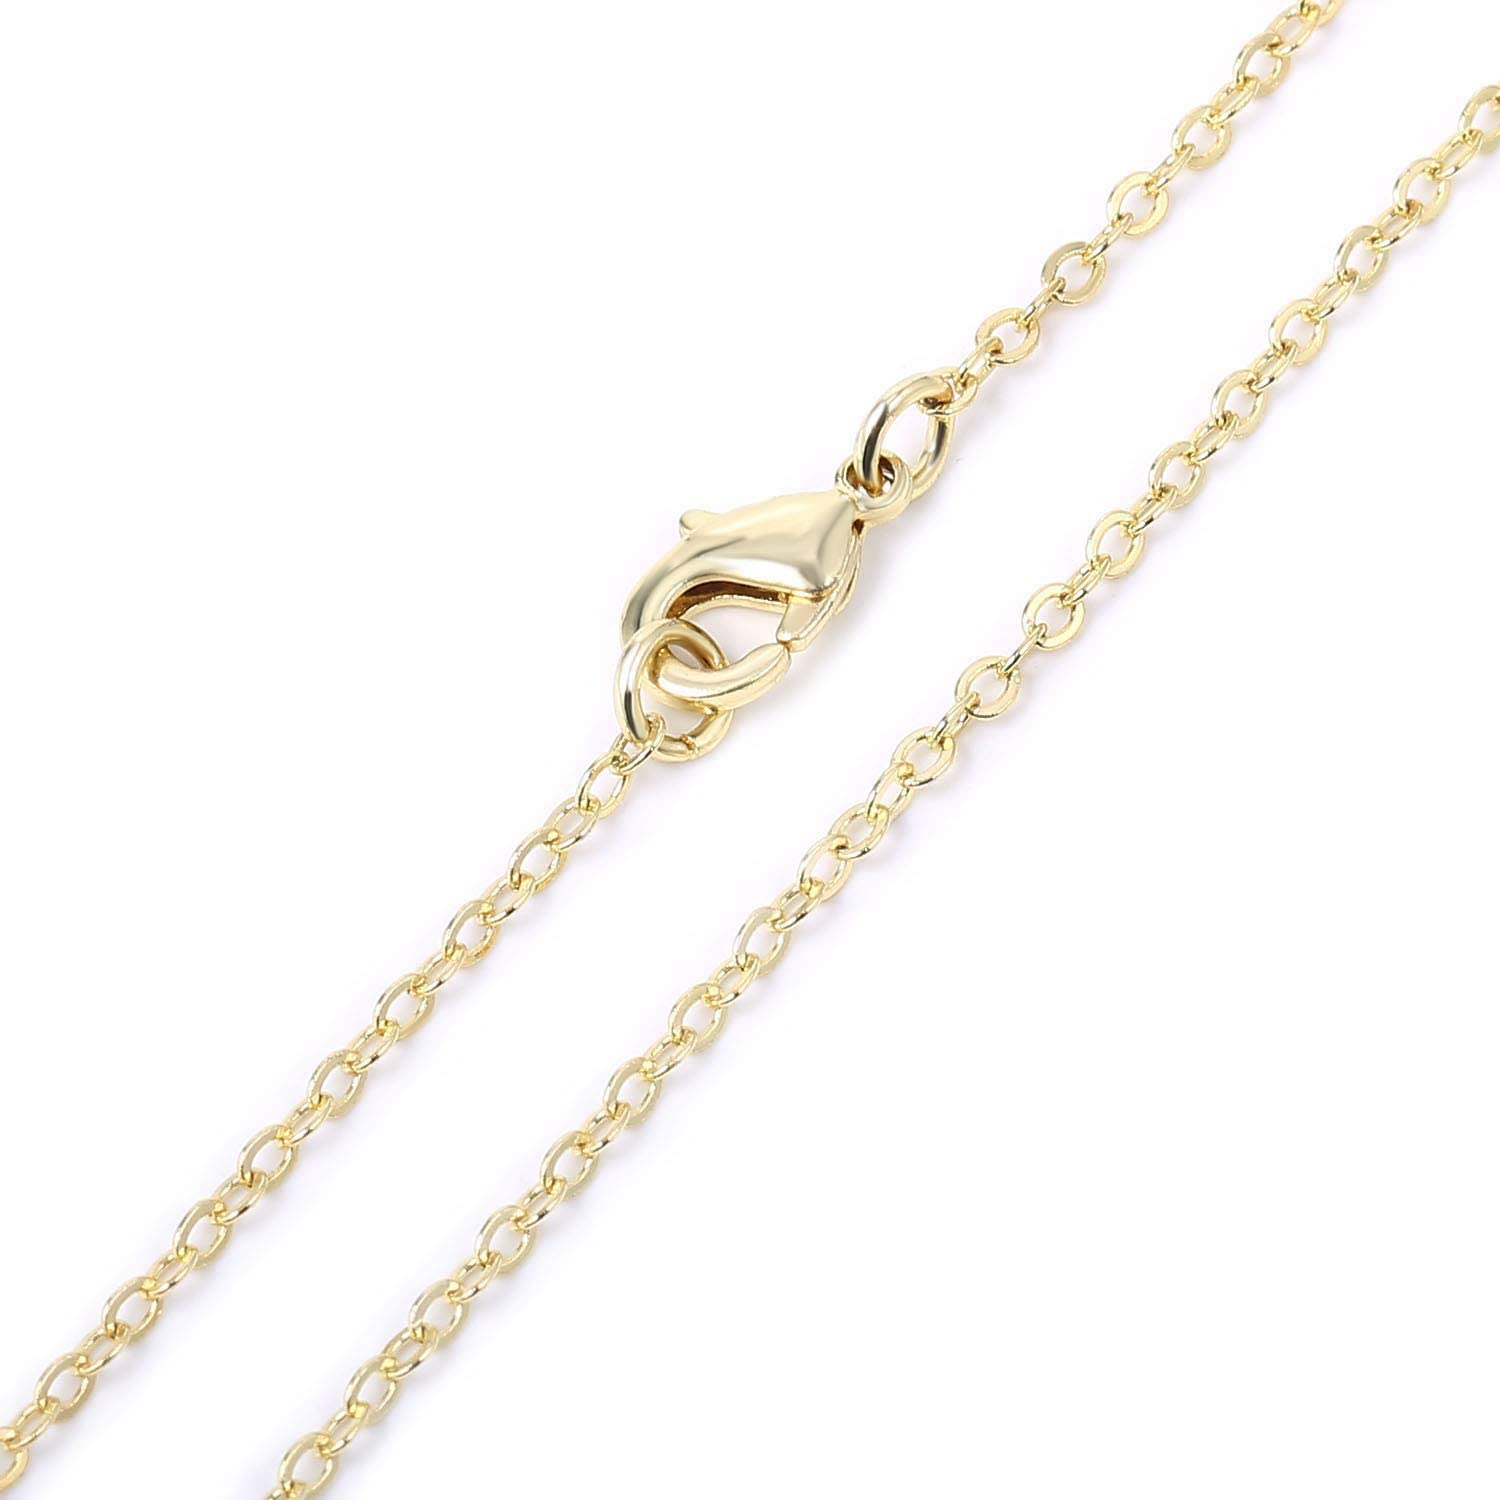 Wholesale bulk Chain for Jewelry Making 3mm Round Link Gold Filled Chain Link Gold Chain Bulk Order 14k Gold Filled Cable Chain by foot